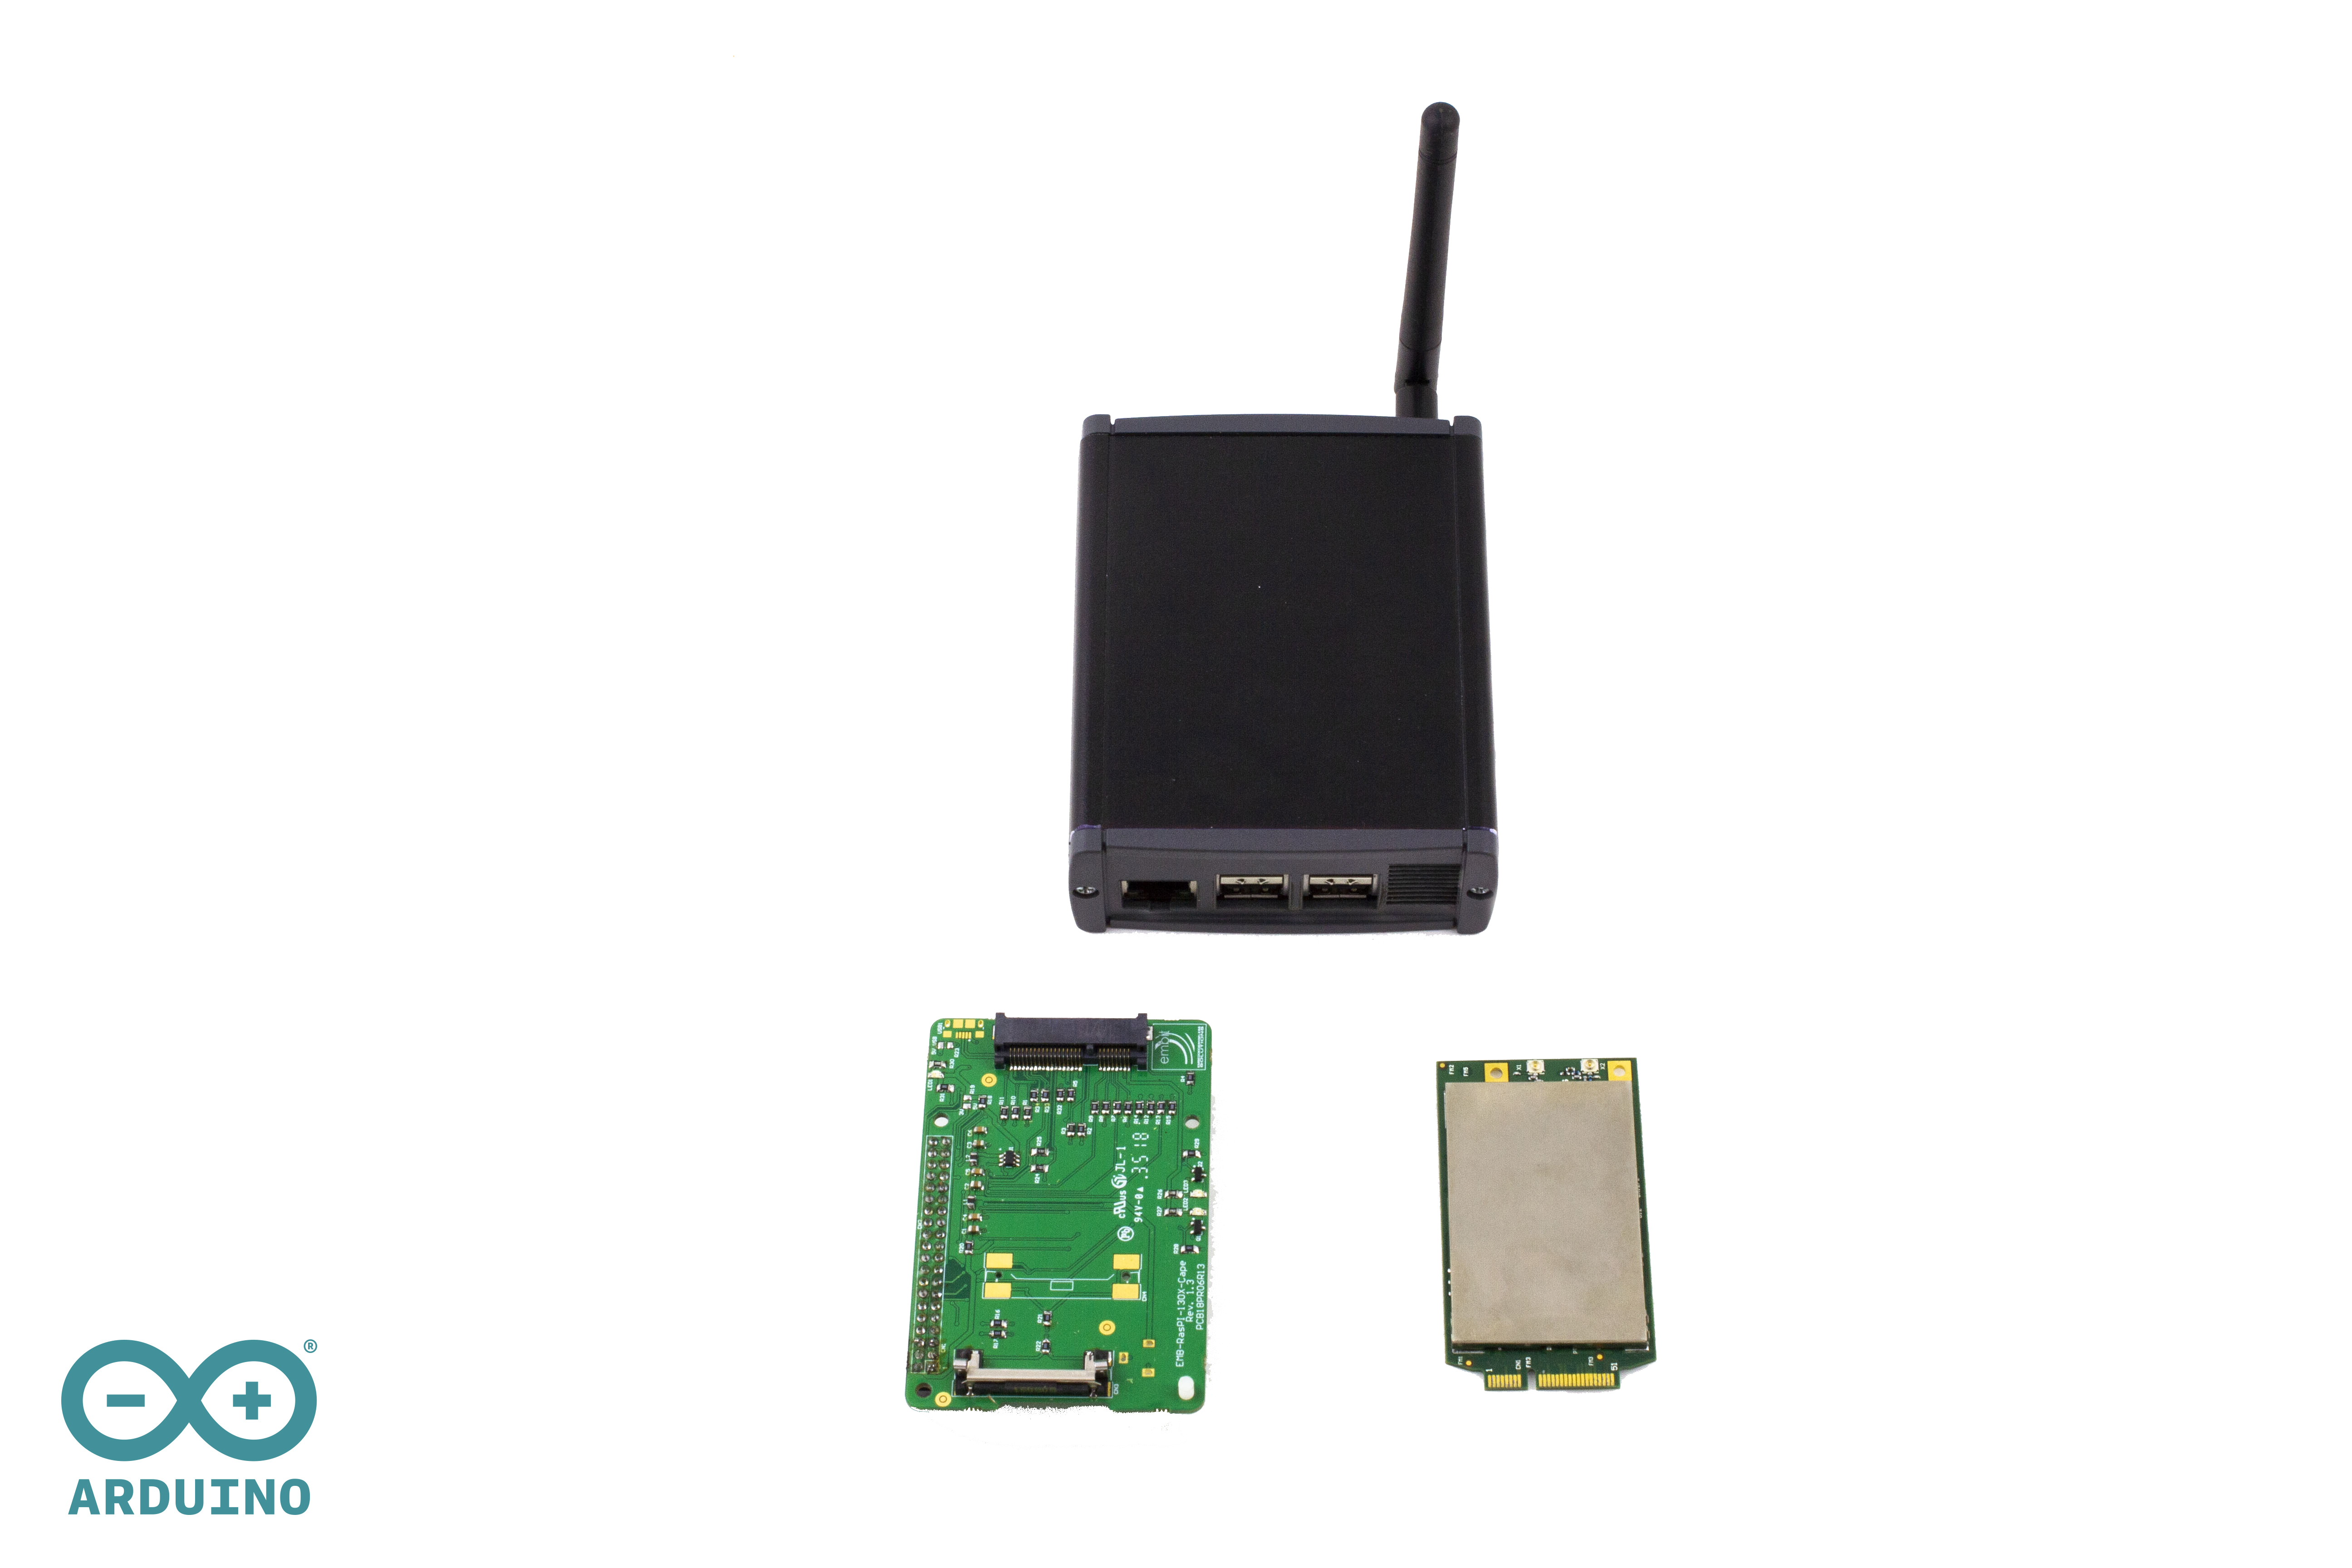 Arduino Blog » Arduino PRO Gateway for LoRa now available